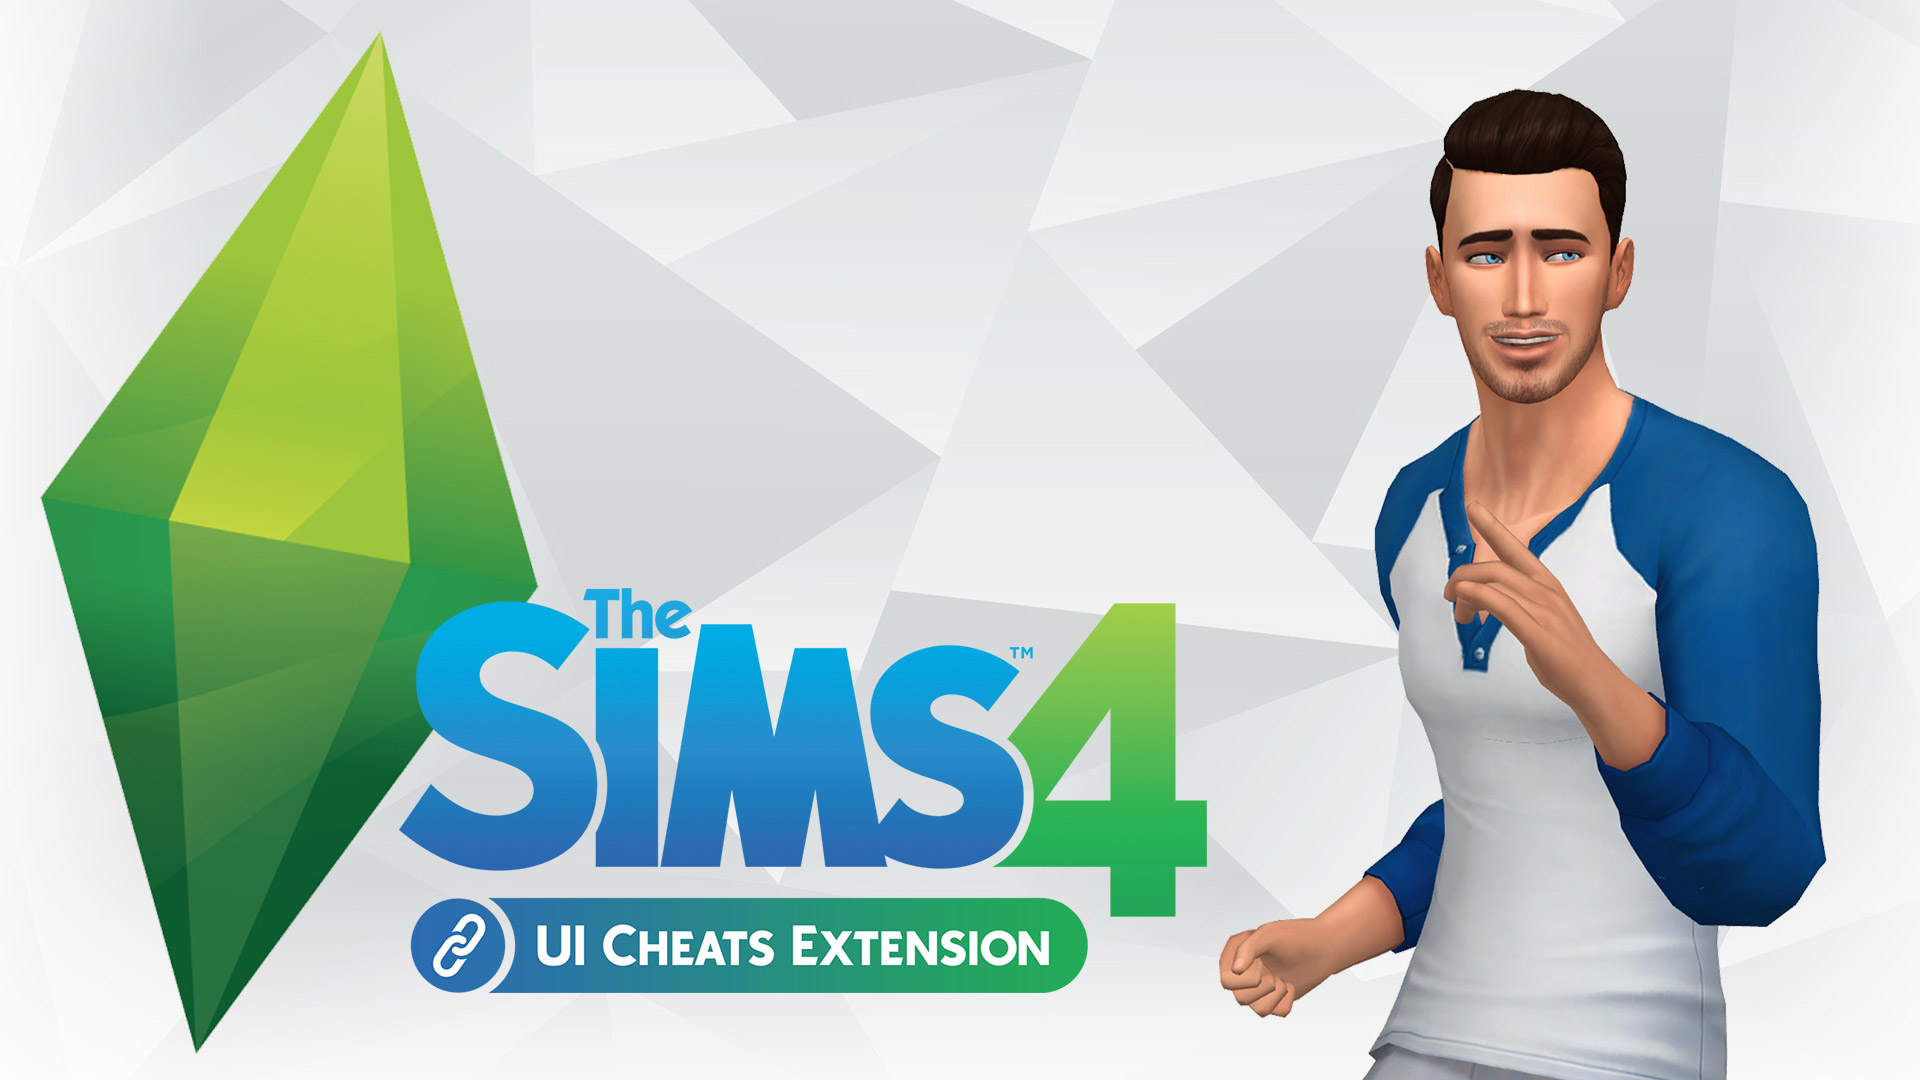 UI Cheats Extension v1 9 - The Sims 4 Catalog